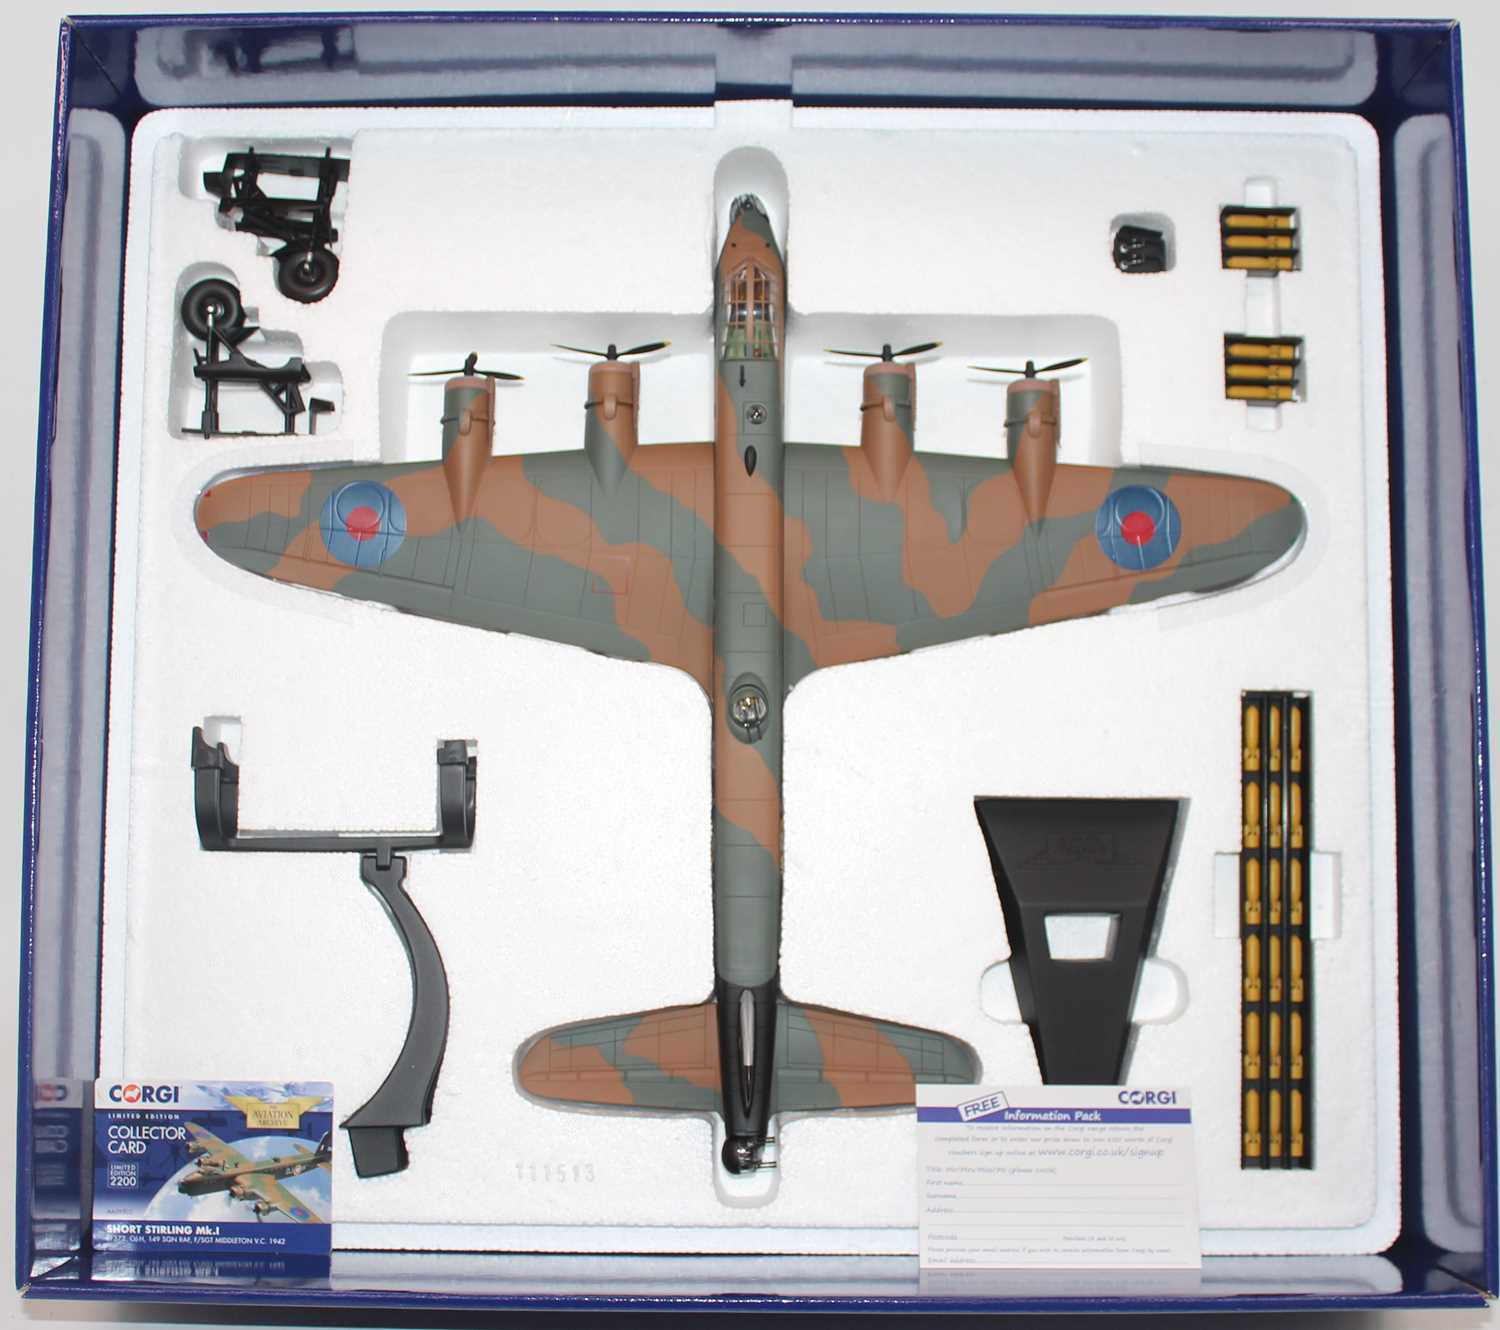 A Corgi Aviation Archive model No. 39502 1/72 scale limited edition diecast model of a Short - Image 2 of 2